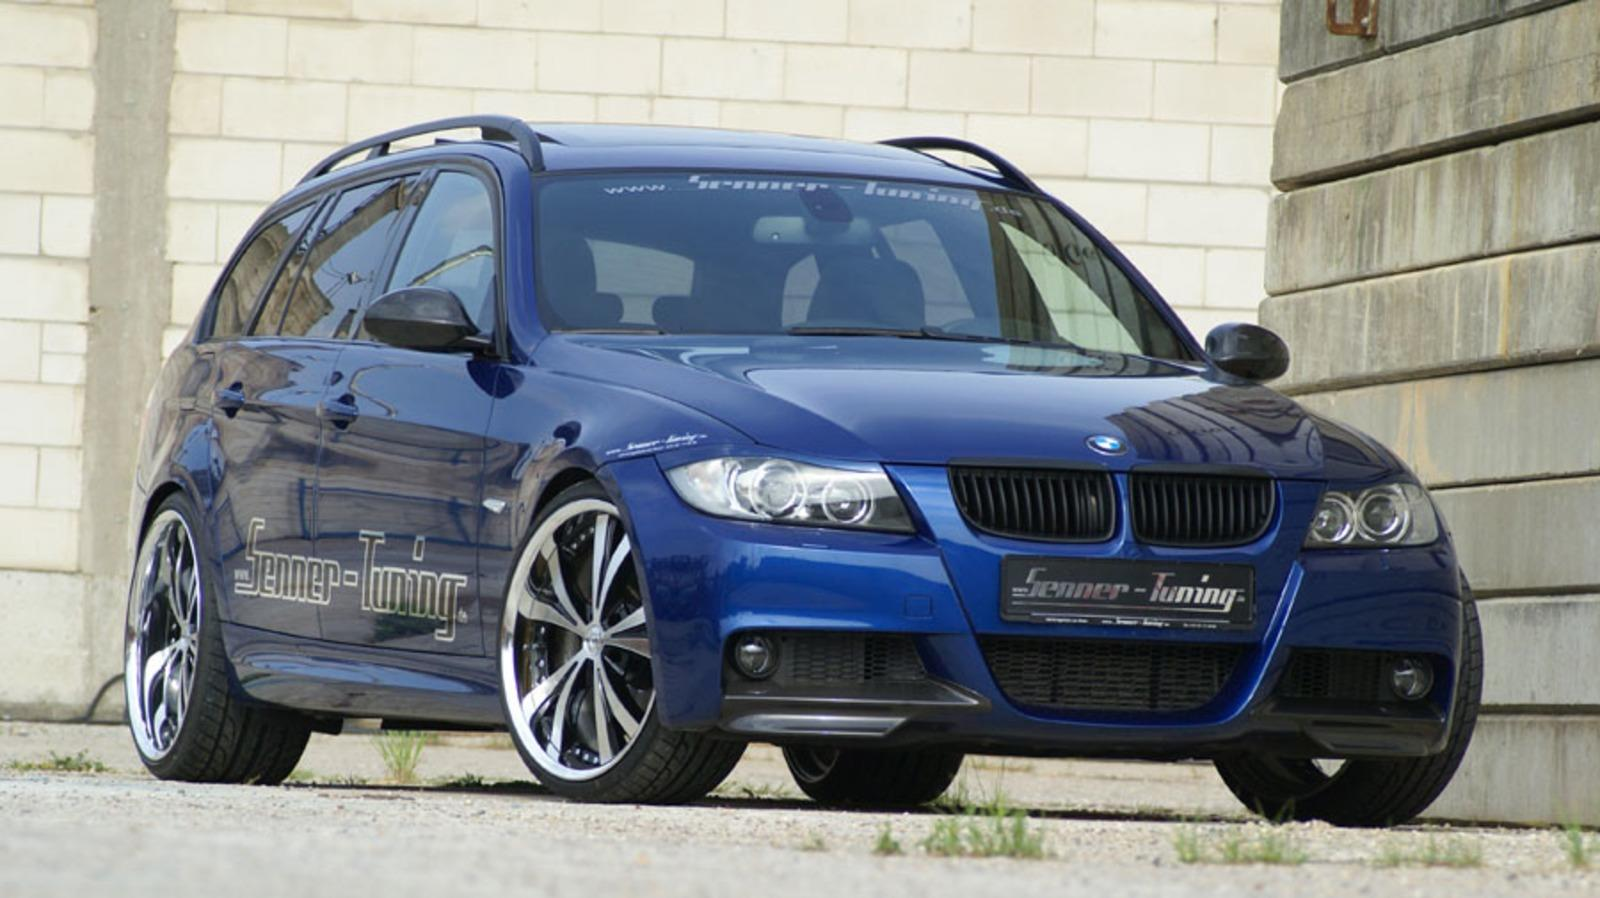 bmw 320d touring by senner tuning news gallery top speed. Black Bedroom Furniture Sets. Home Design Ideas